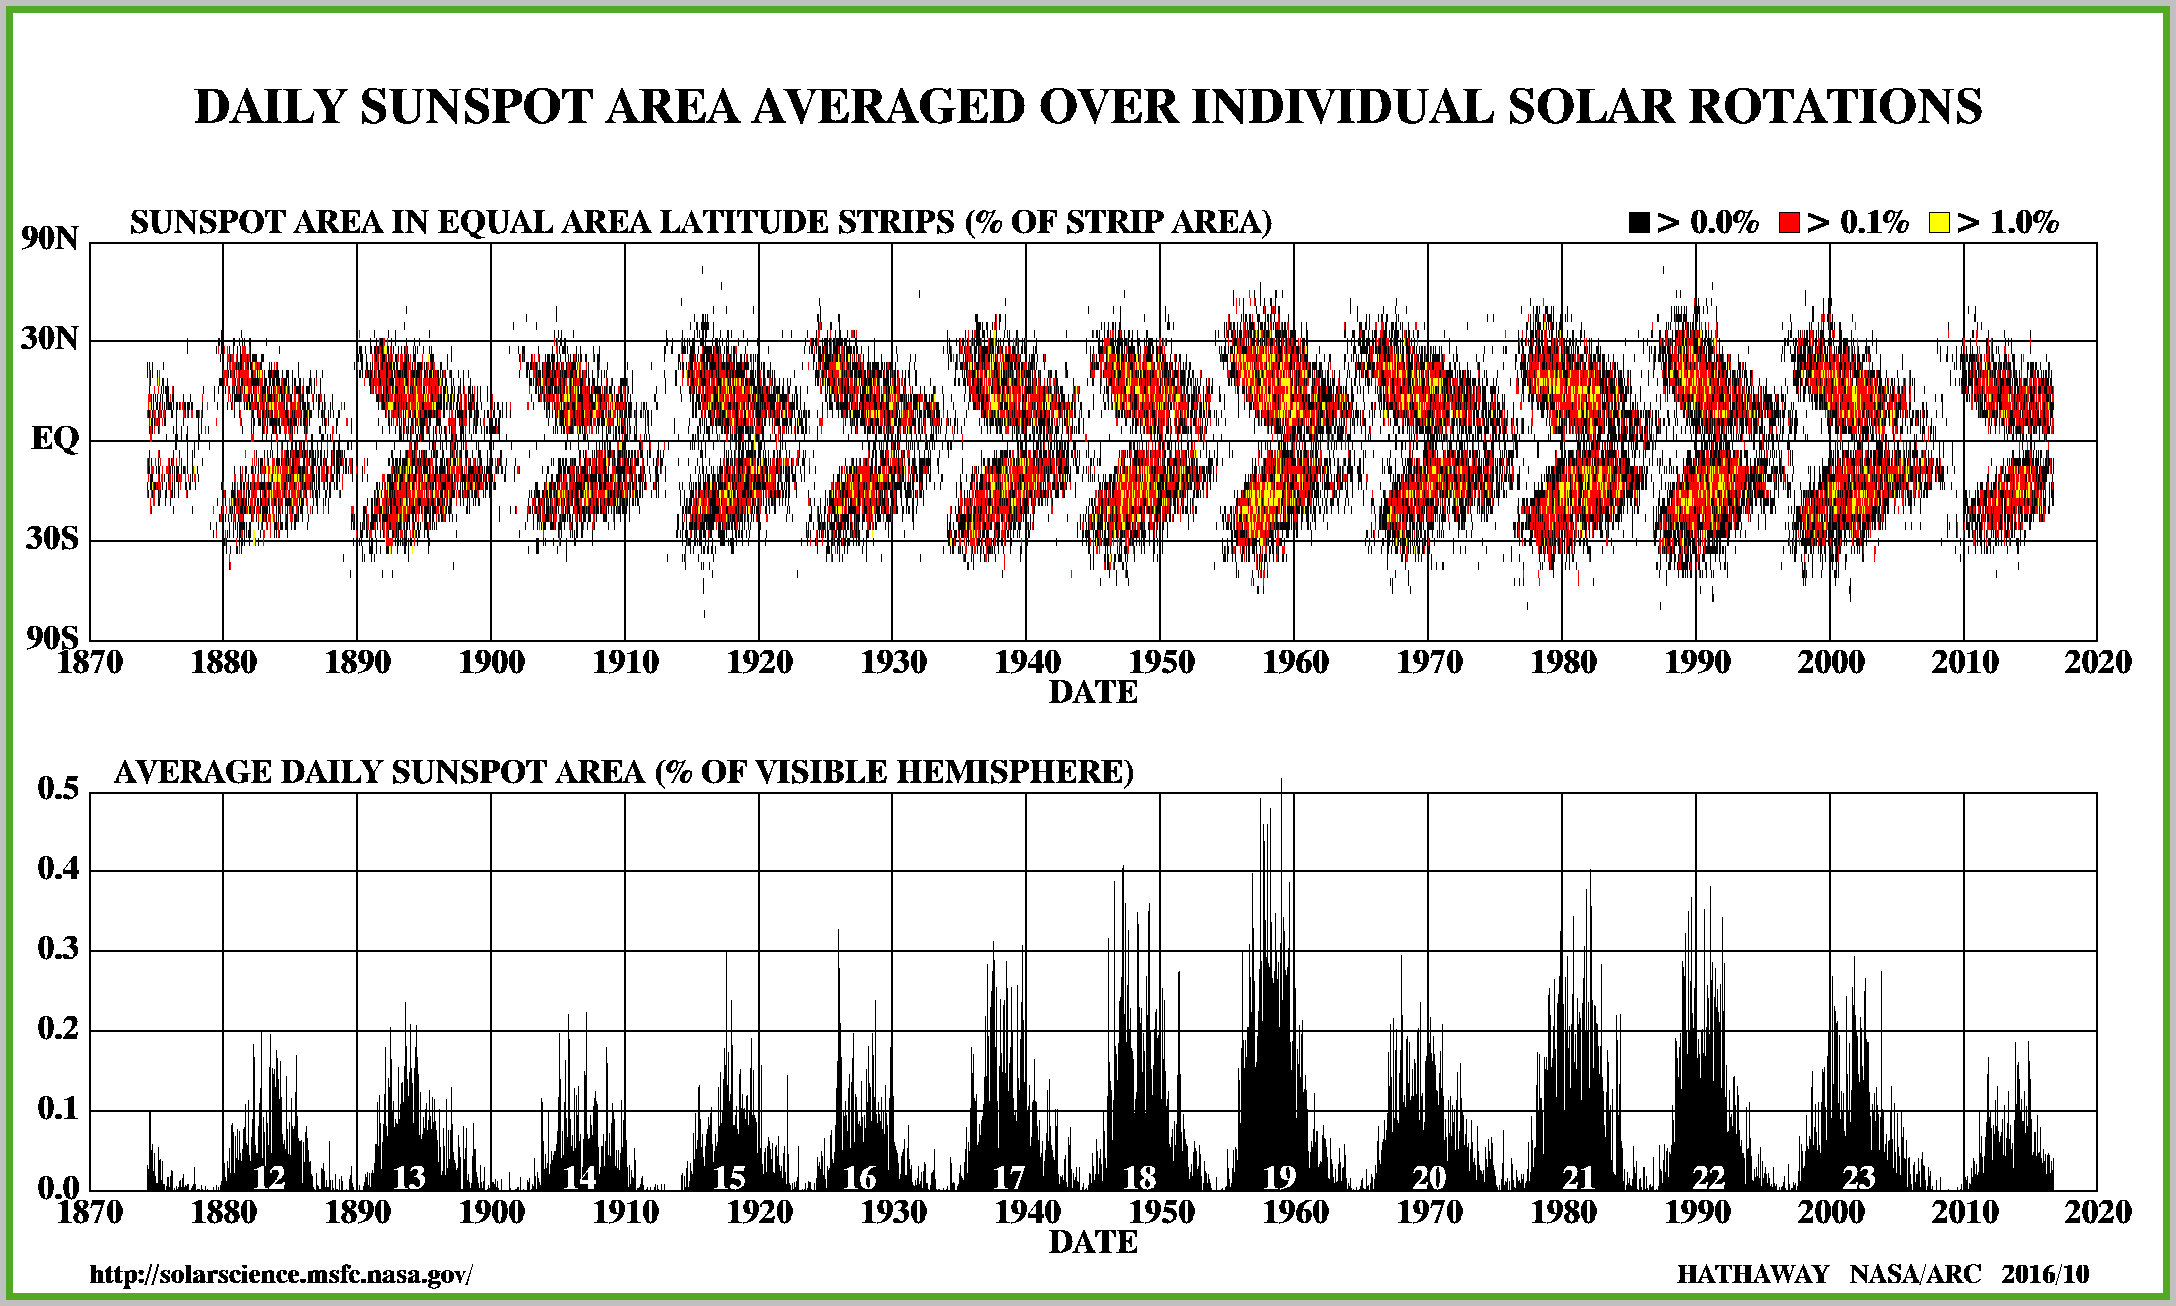 Butterfly diagram shows latitude of sunspots over the last 10 solar cycles